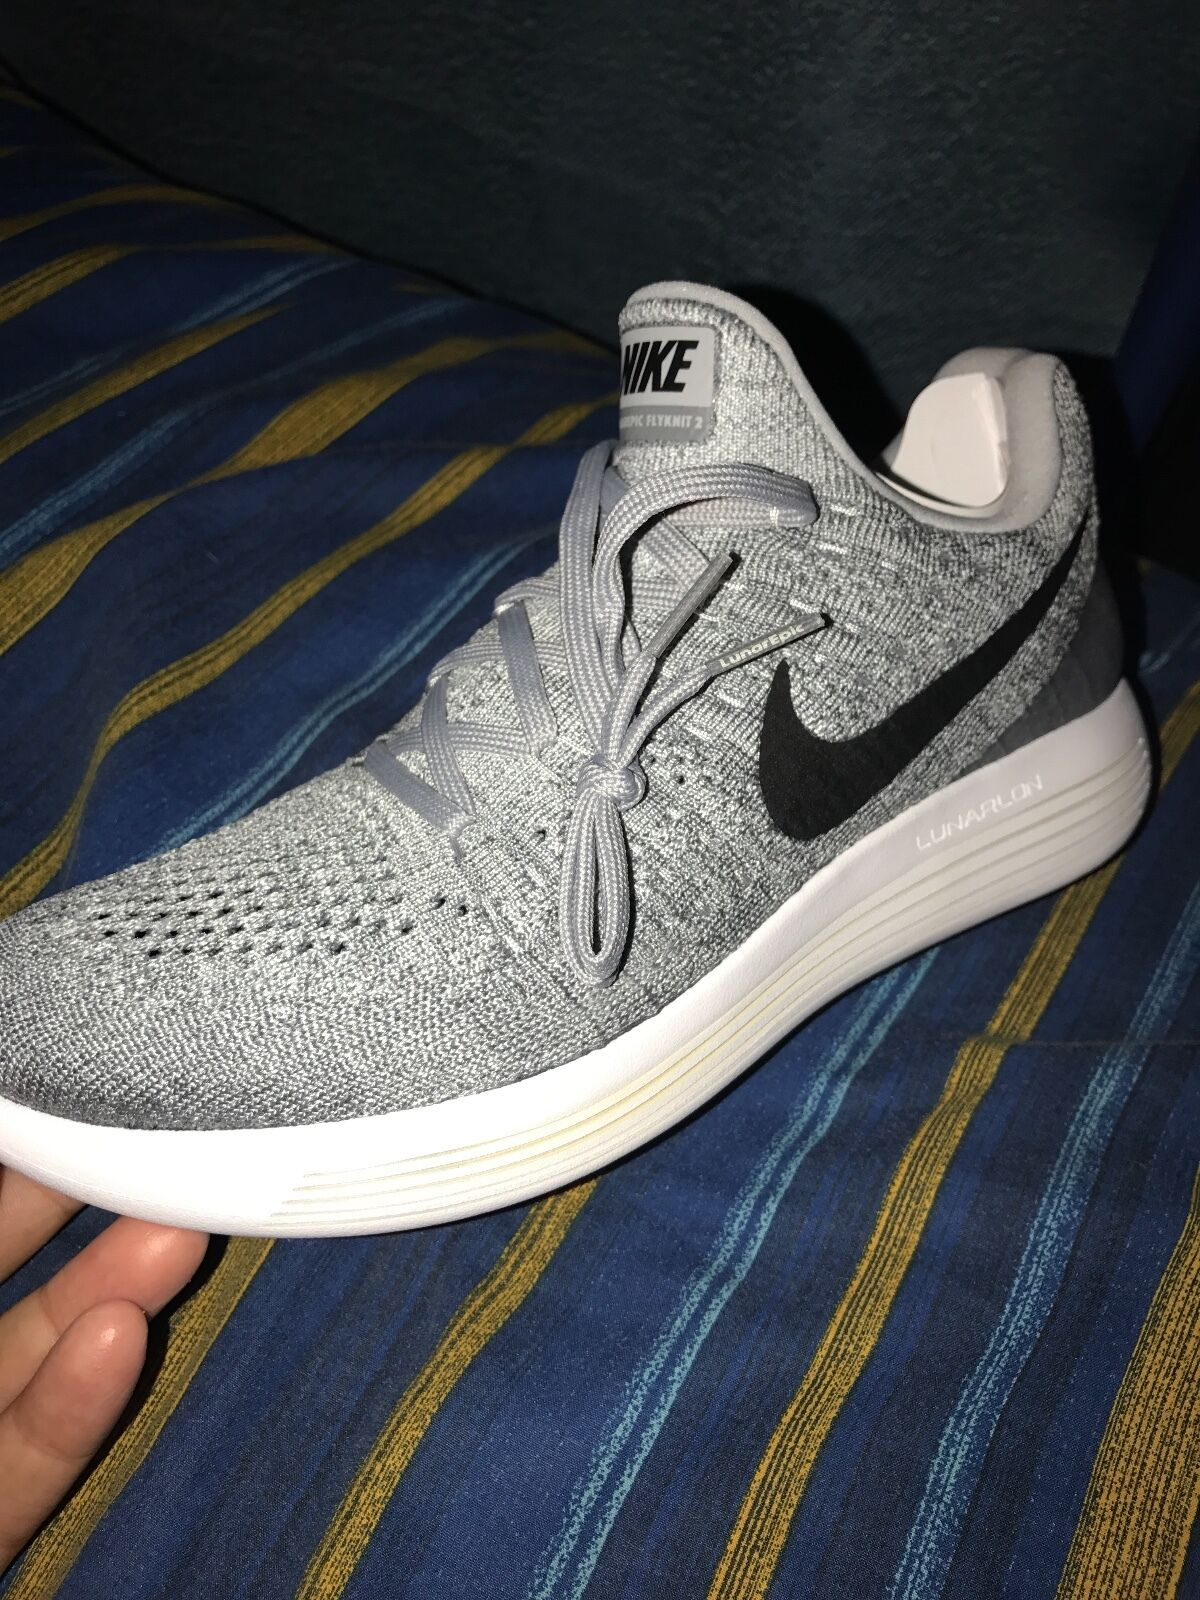 1ed7e03bada50 Women s Nike LunarEpic Low Flyknit 2 Wolf Grey Black Grey Platinum 863780  002